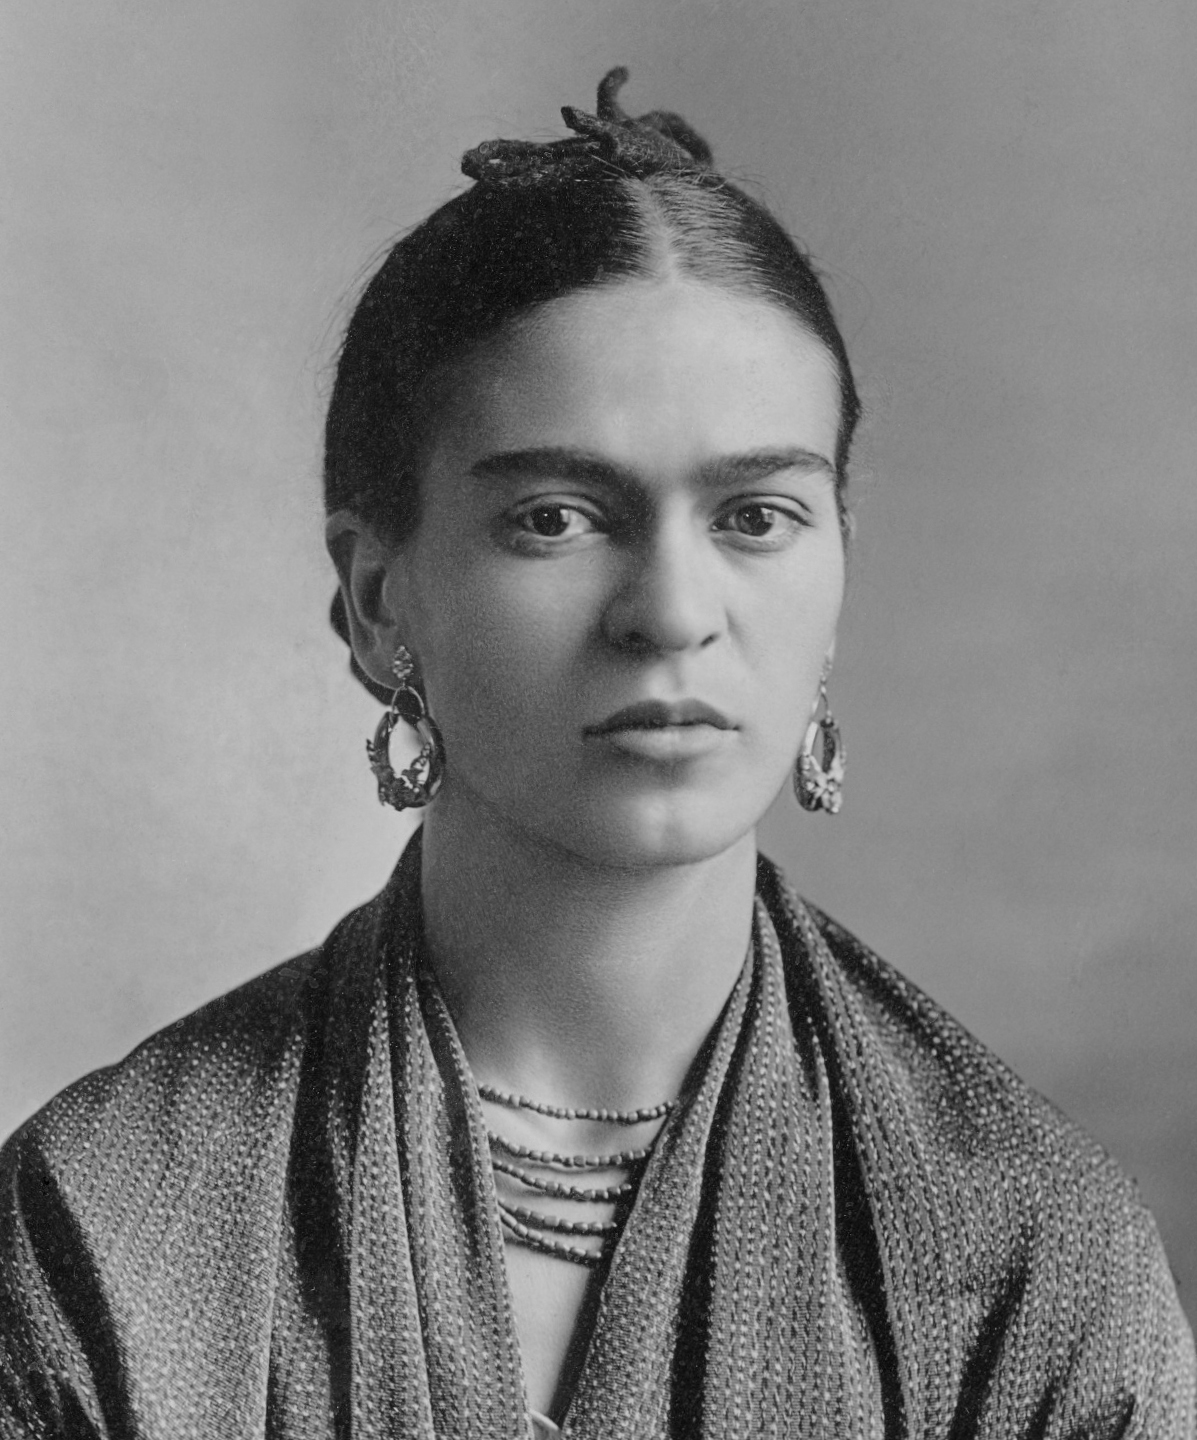 File:Frida Kahlo, by Guillermo Kahlo (cropped).jpg - Wikipedia